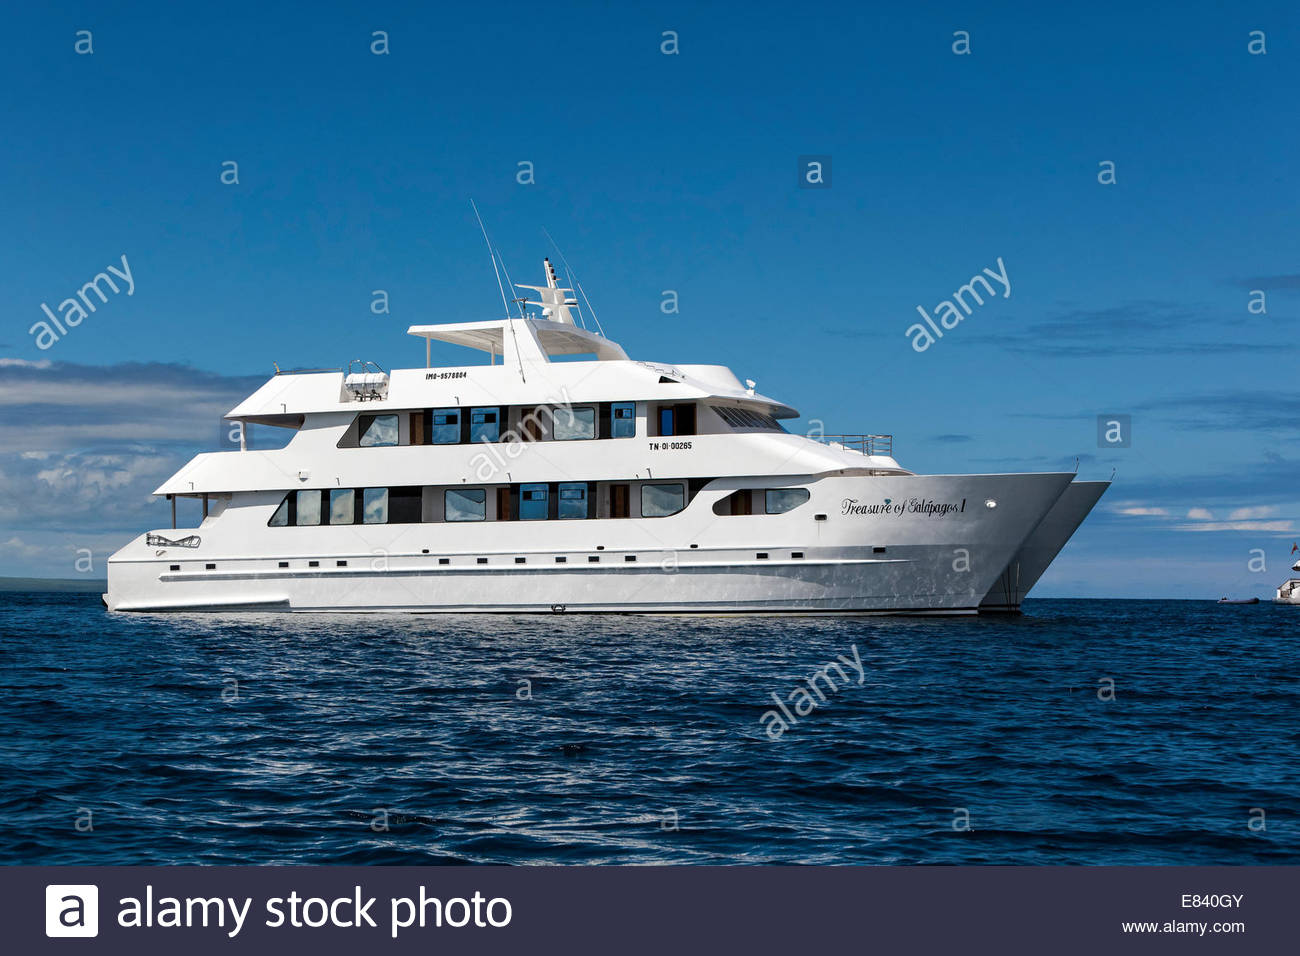 Catamaran, Galapagos Islands, Ecuador - Stock Image